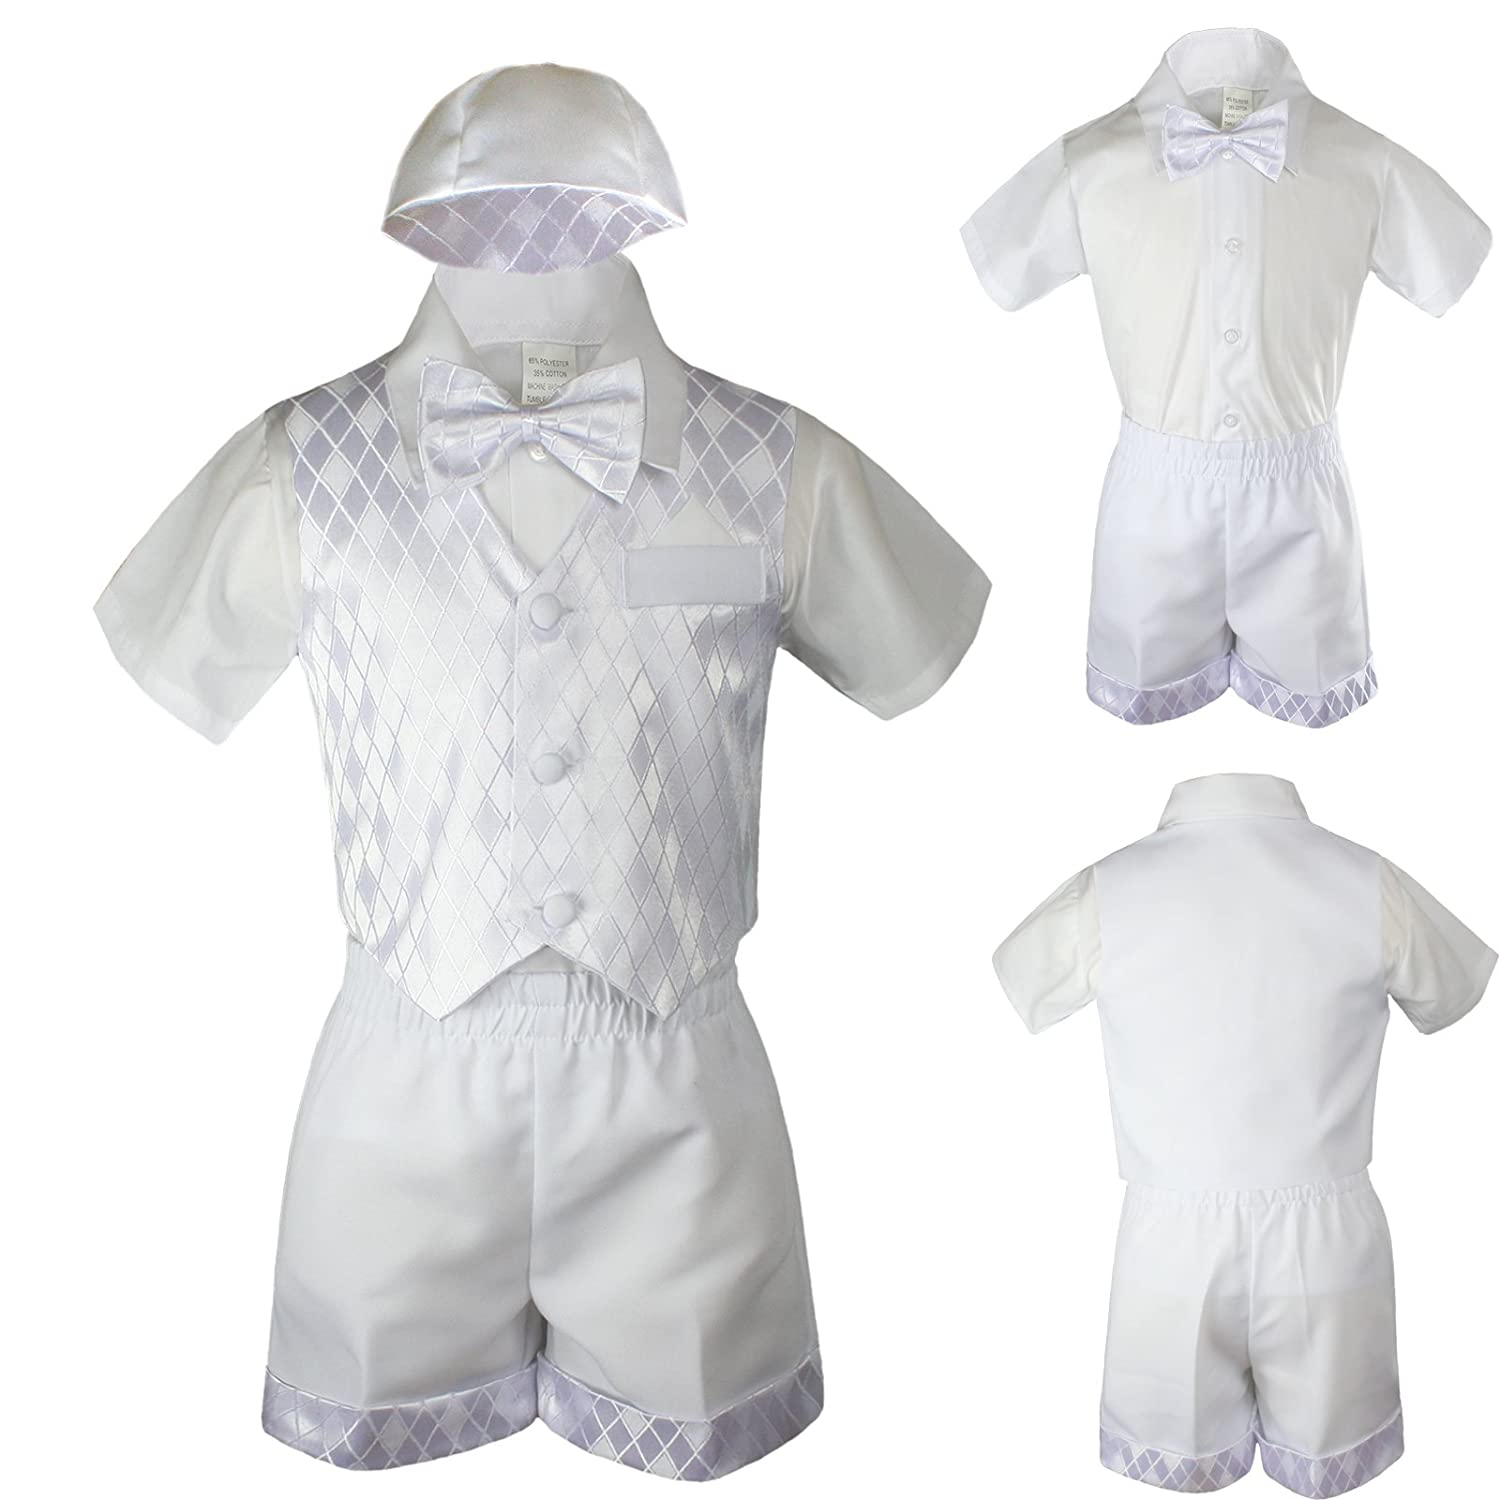 9dd46742b3b Amazon.com  Boys Baby Toddler Baptism Church Baptism Vest Shorts Suit White  Hat S-4T (2T)  Baby